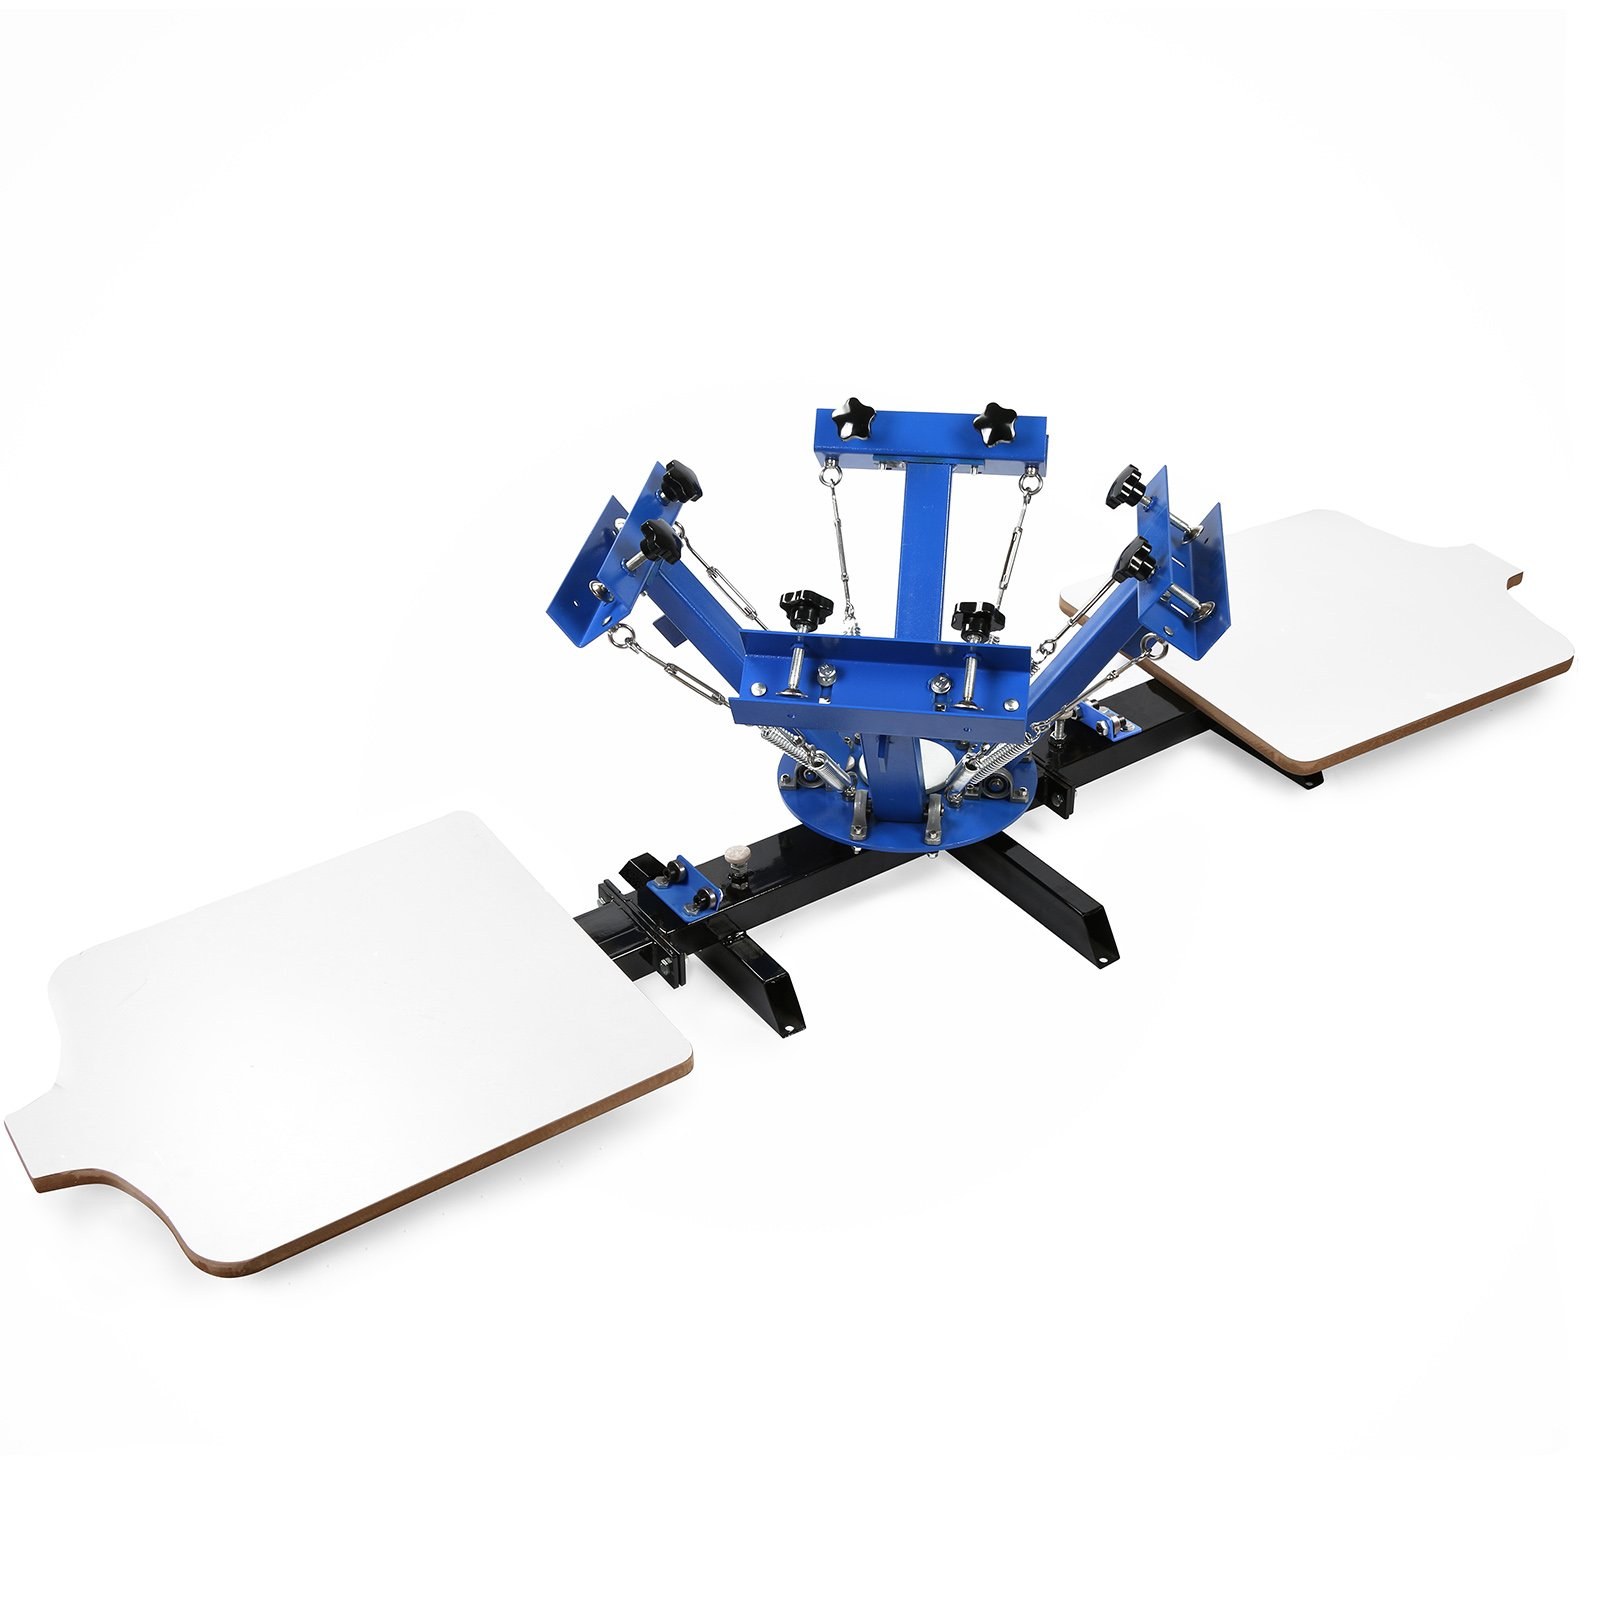 933cff81 Get Quotations · Maxwolf Screen Printing Machine Silk Screen Printing  Machine Screen Printing Press 4 Color 2 Station Double